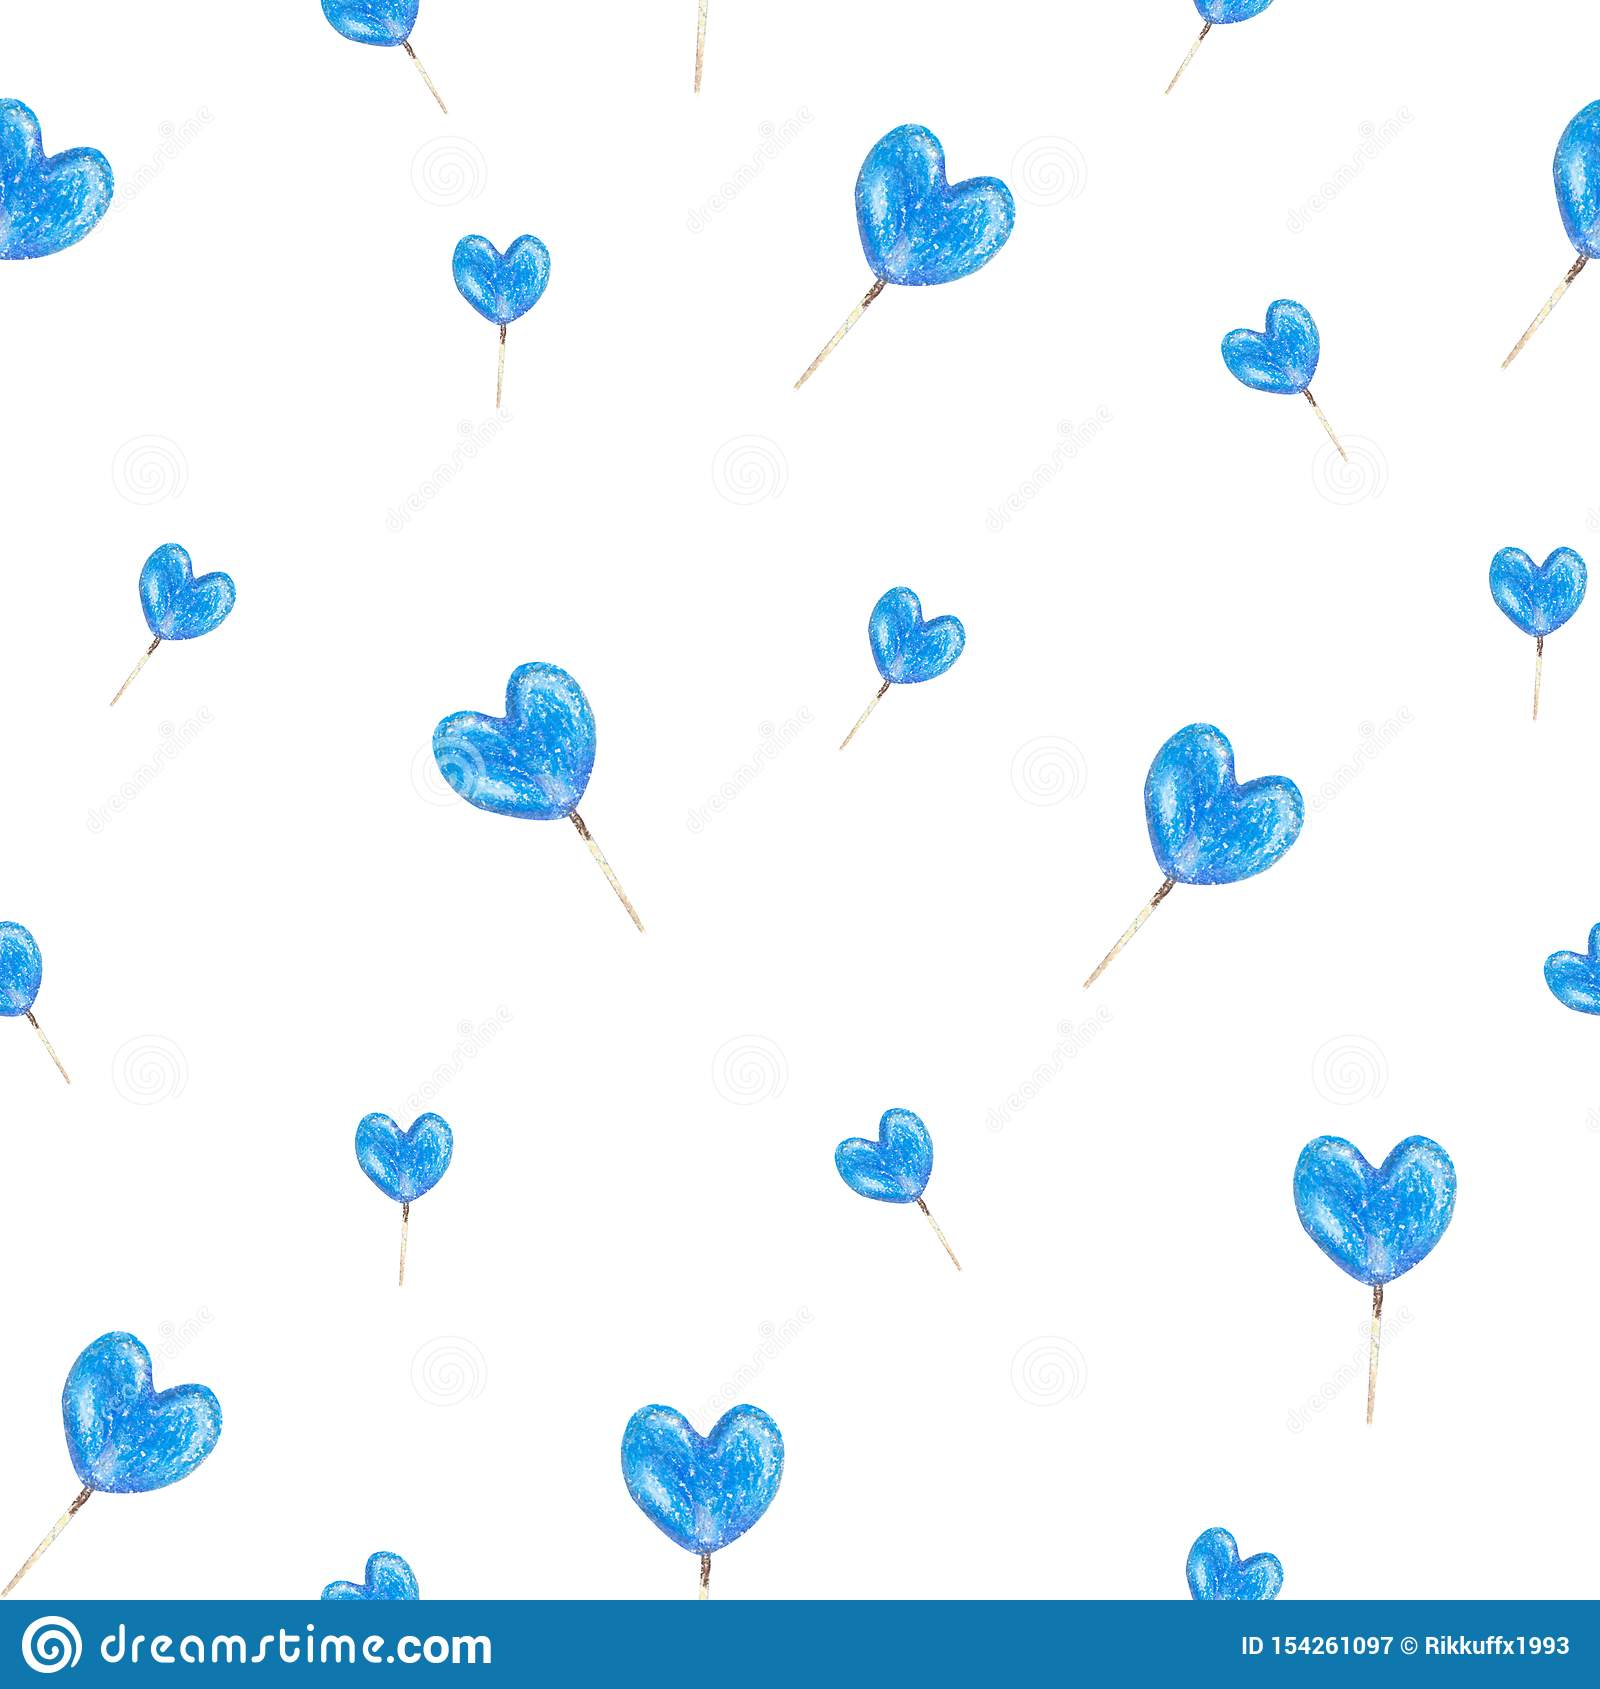 Seamless texture of a hand drawn blue heart lollipops made by oil pastels. Isolated on a white background